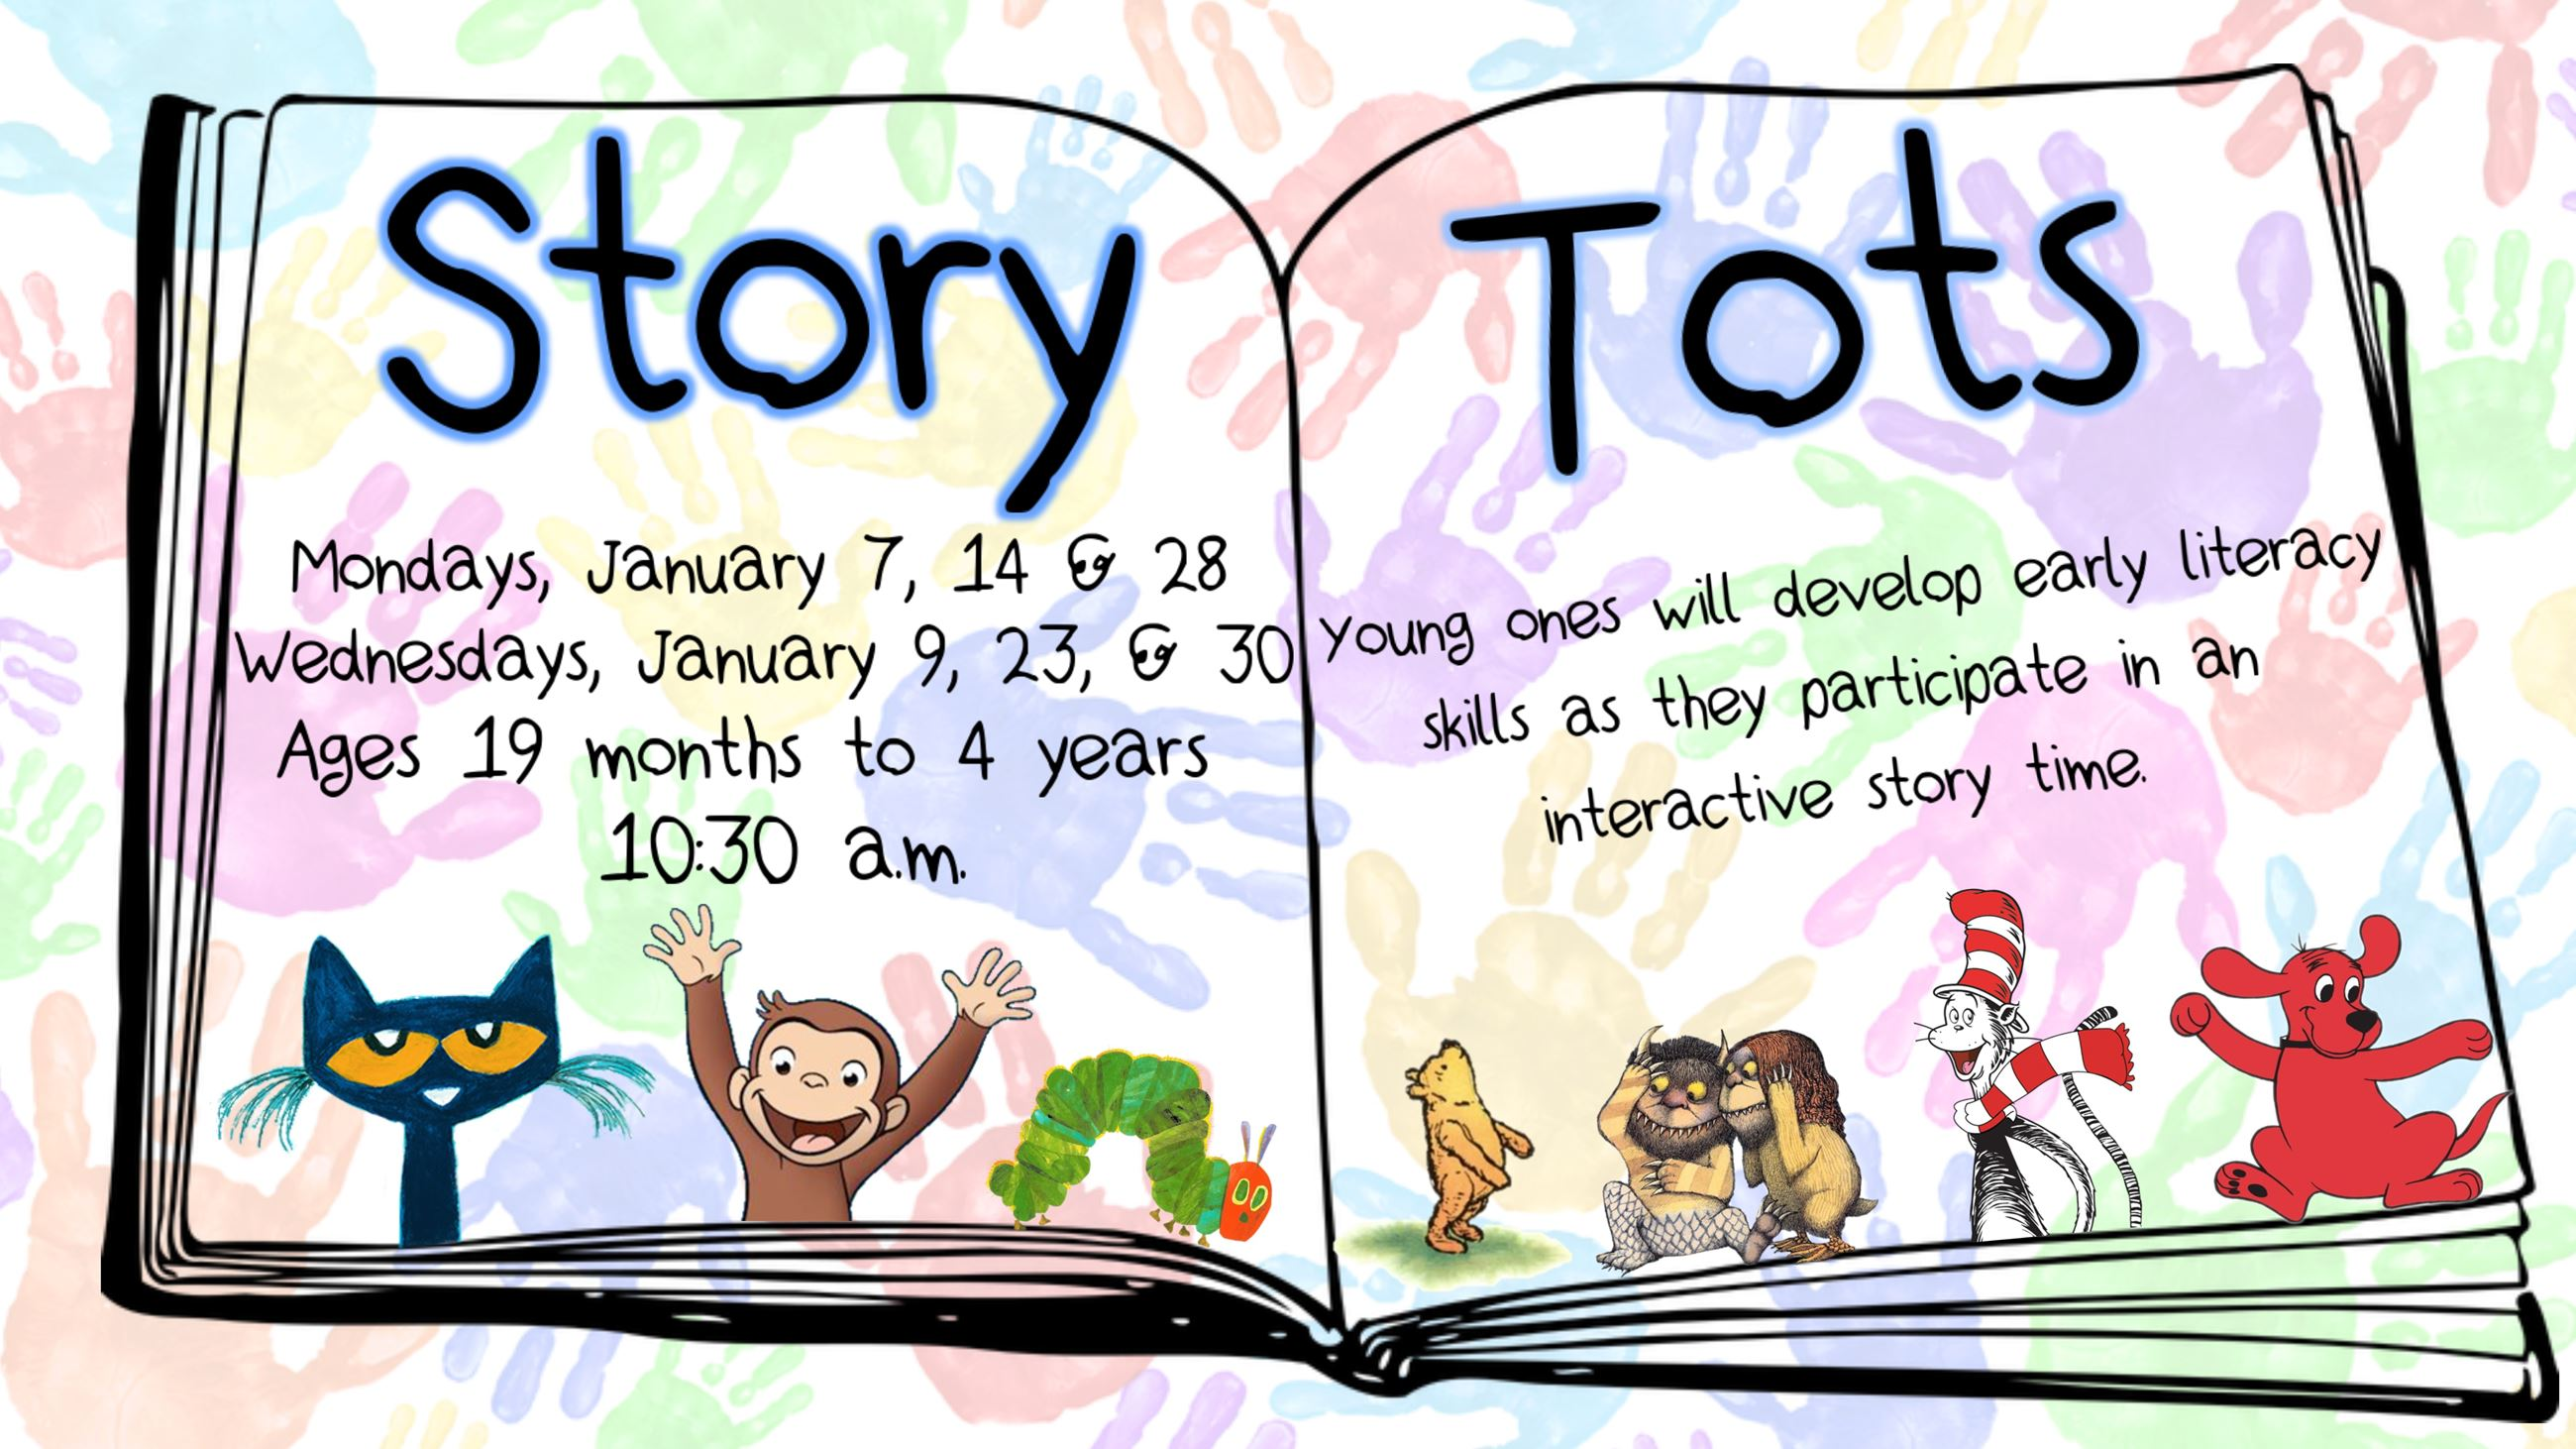 Story Tots. January 7, 9, 14, 23, 28, & 30 @ 10:30 a.m. Ages 19 months to 4 years.